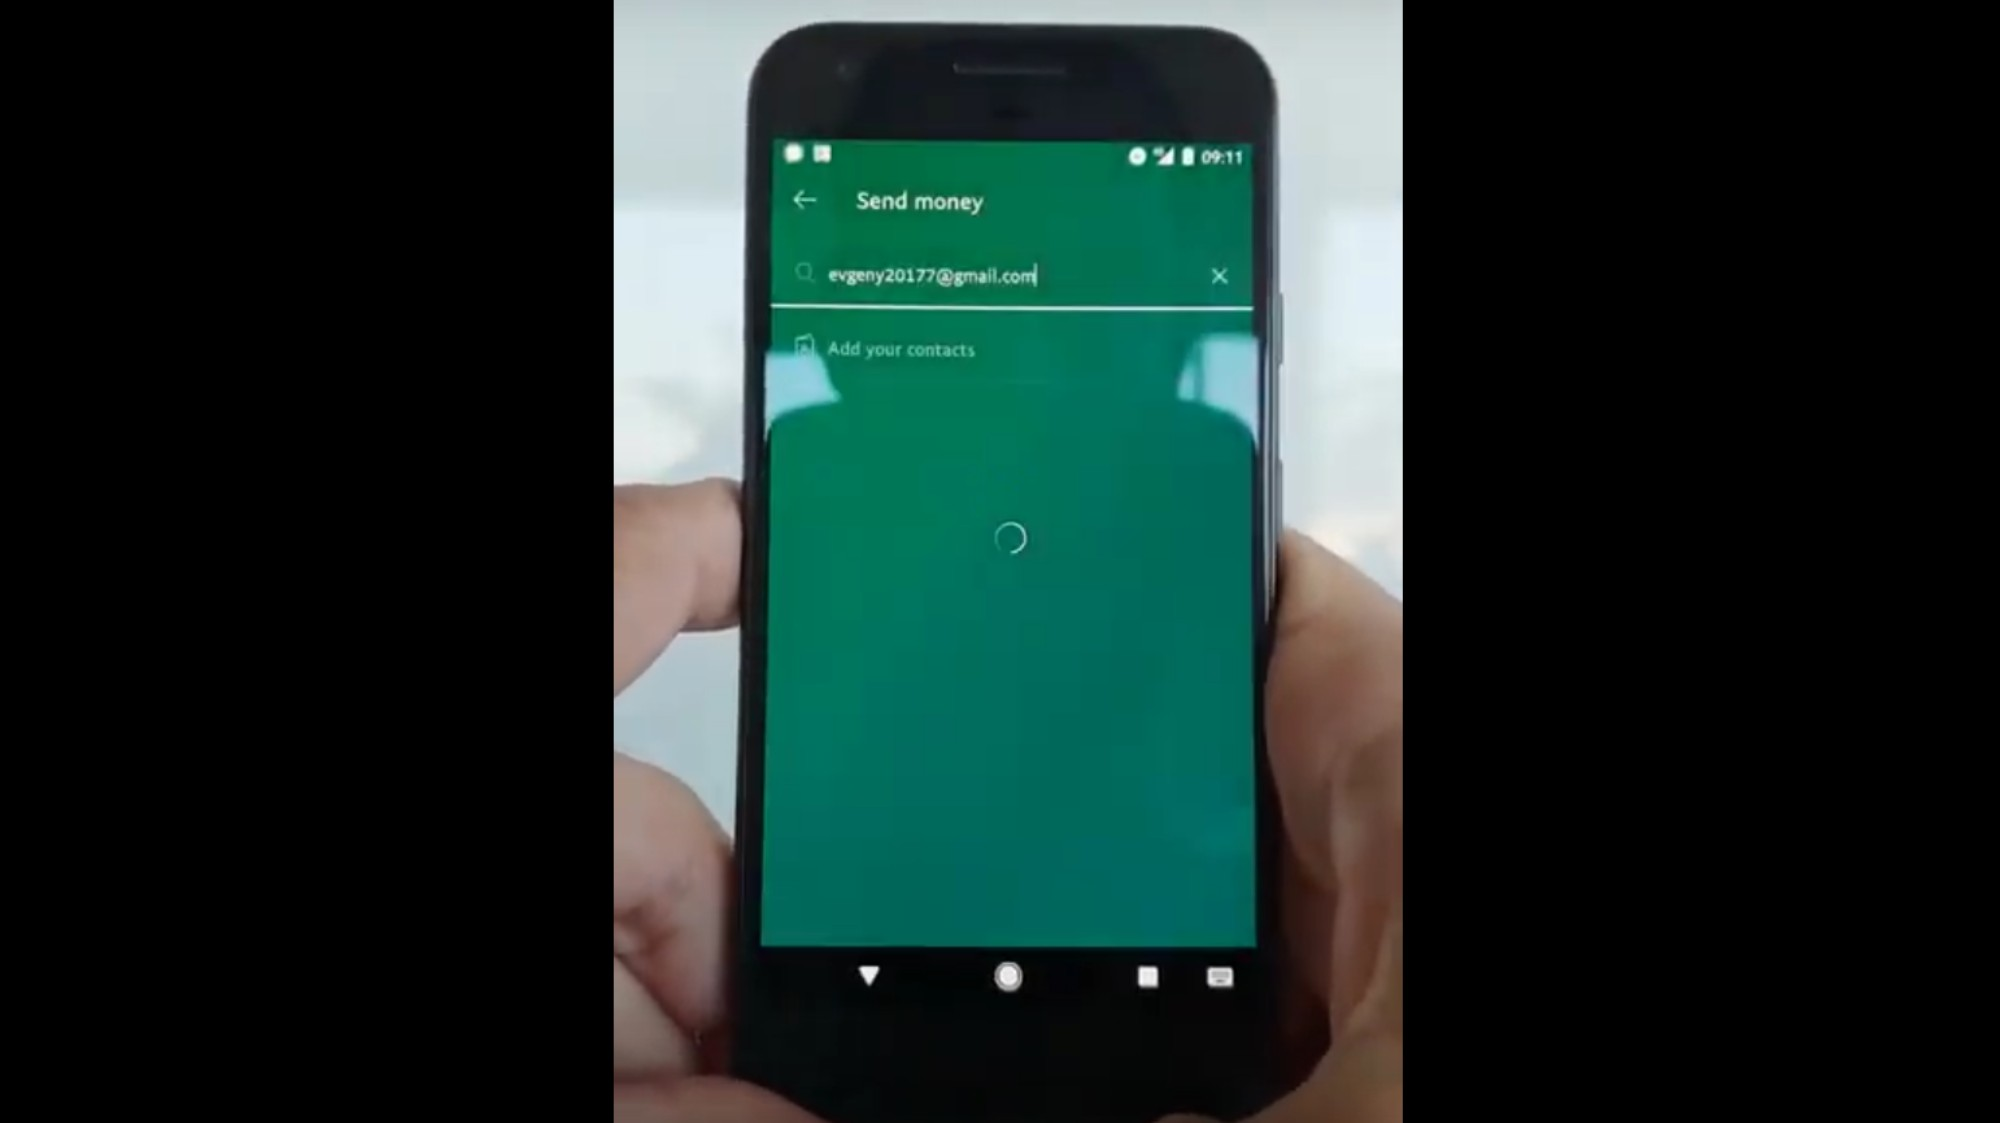 Watch Android Malware Automatically Steal 1,000 Euros From a